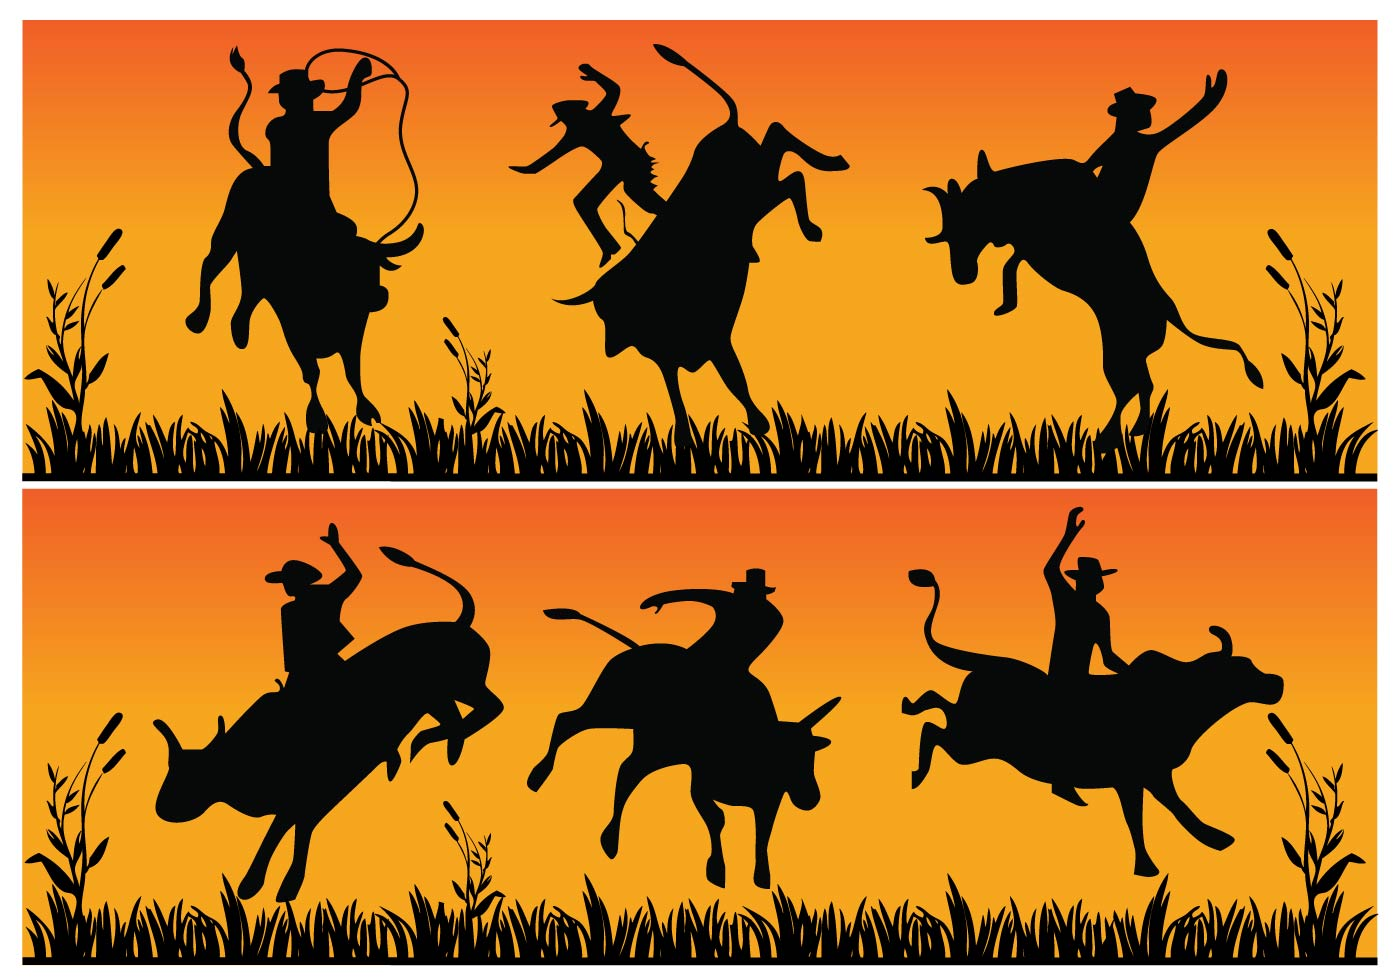 Bull riding silhouette - Download Free Vector Art, Stock ...